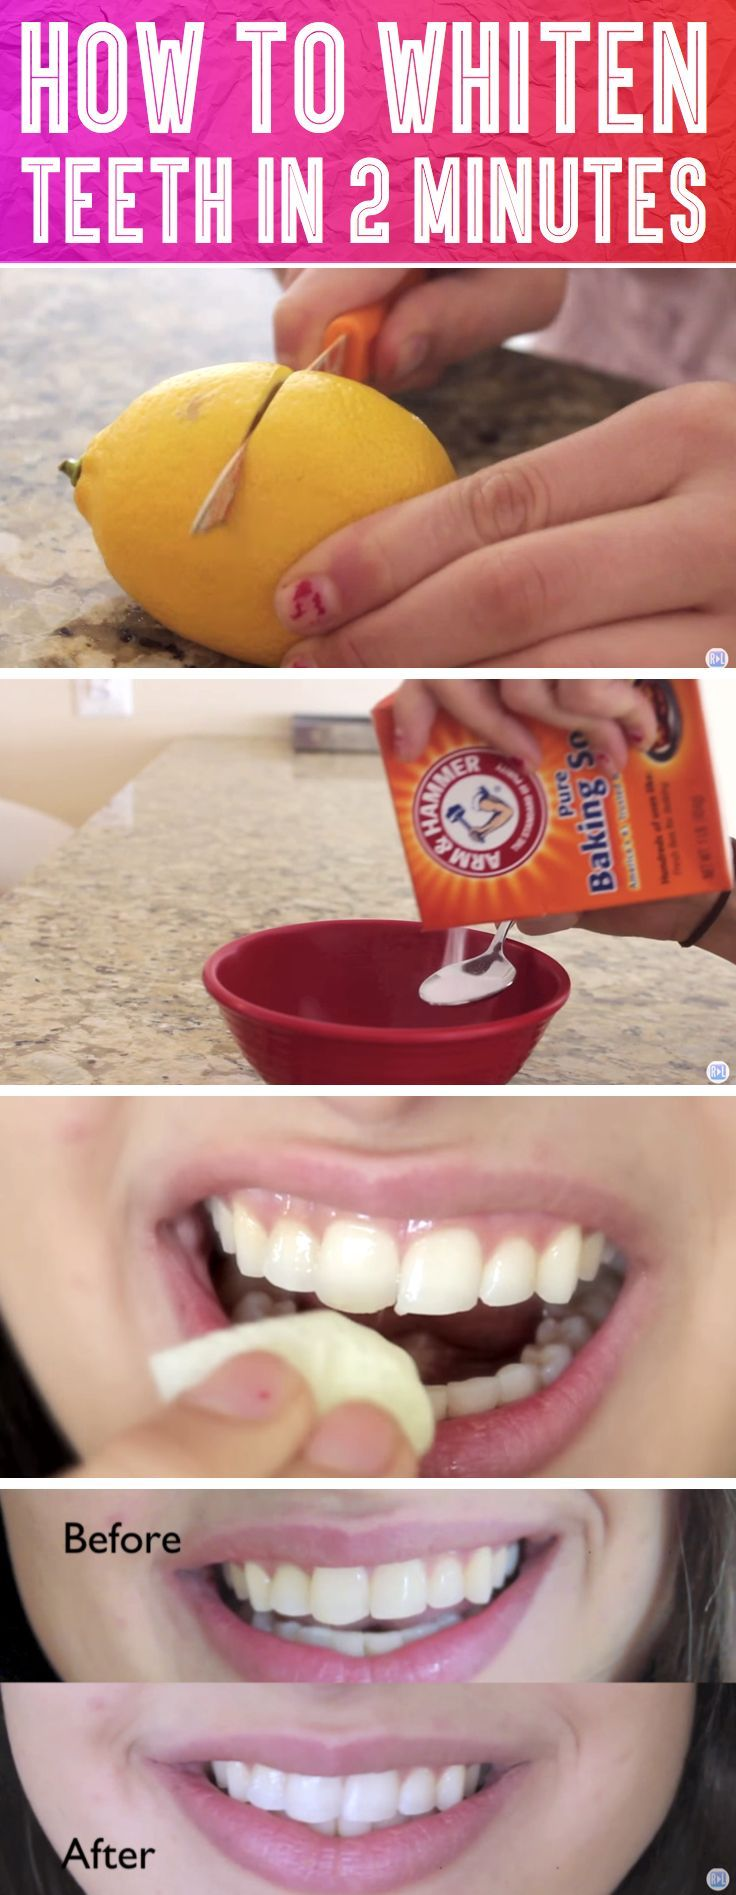 DO NOT keep the mixture on your teeth for more than two minutes u2013 the acid is very potent and will cause tooth decay if you abuse this method.